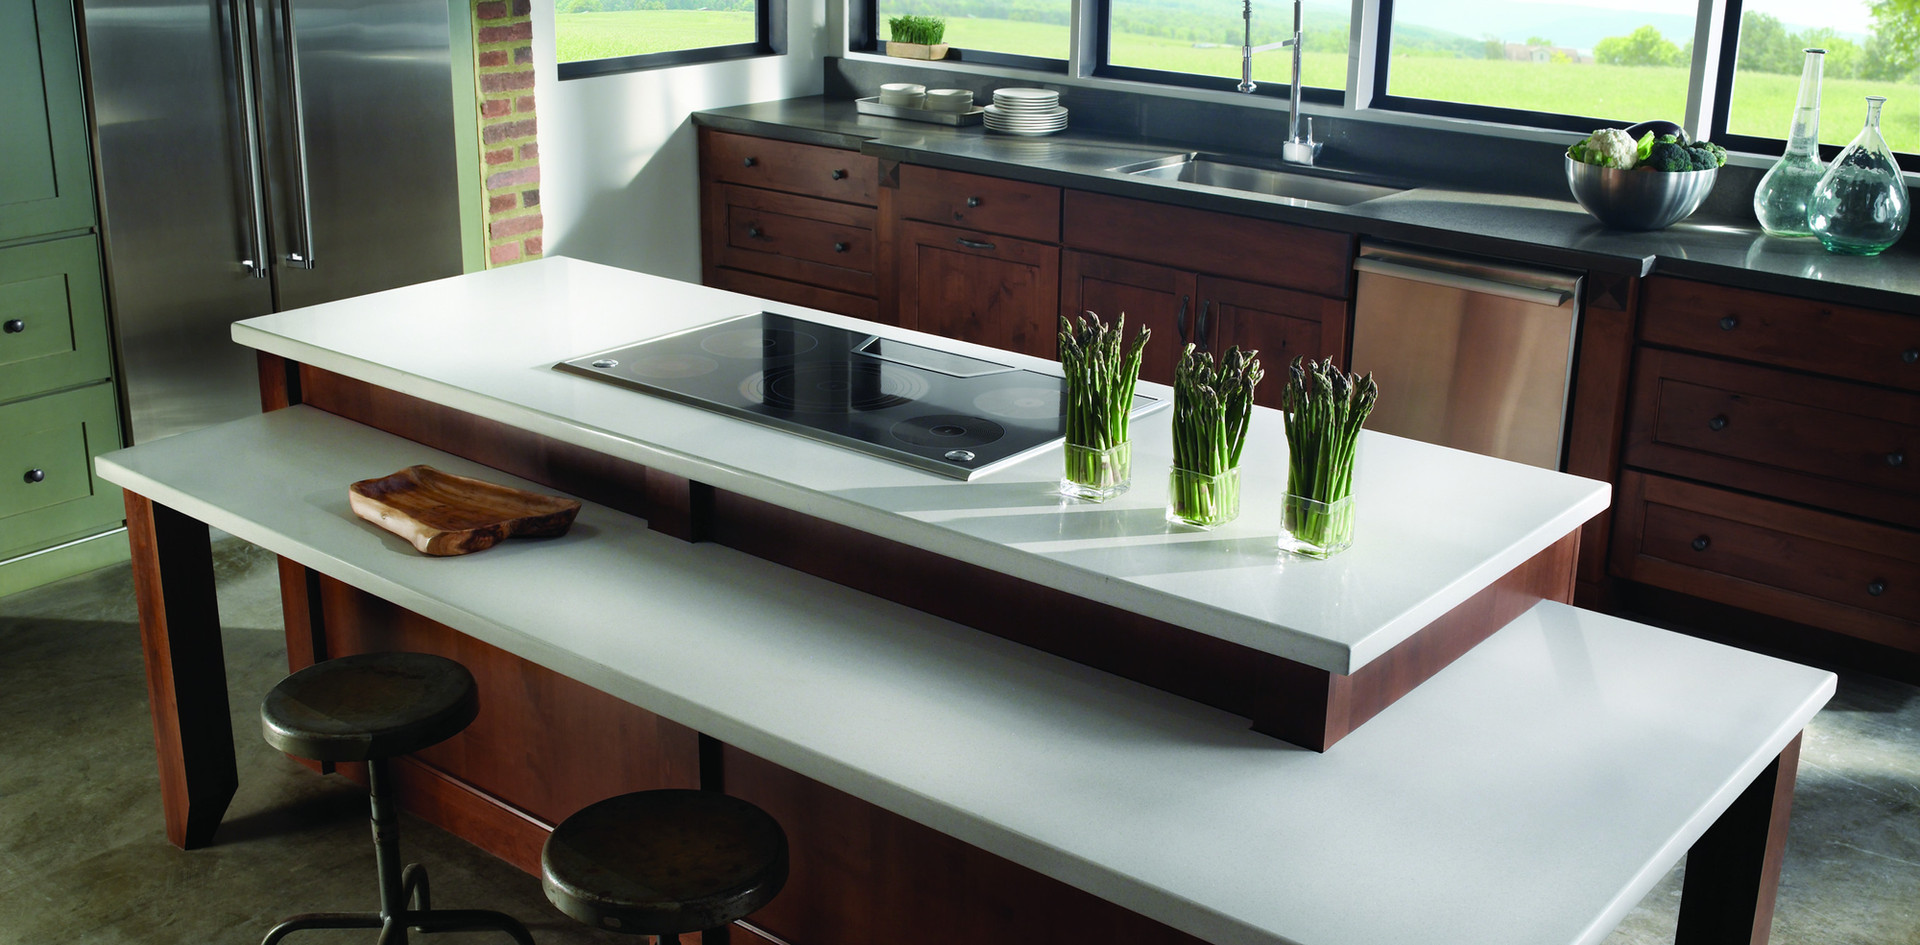 Modern Quartzite Kitchen Countertops, We specialize in the fabrication & installation of Marble, Granite, Silestone, Ceaserstone, Han stone, Zodiaq, Cambria, Quartz Master and Ice Stone. Njcountertops.com